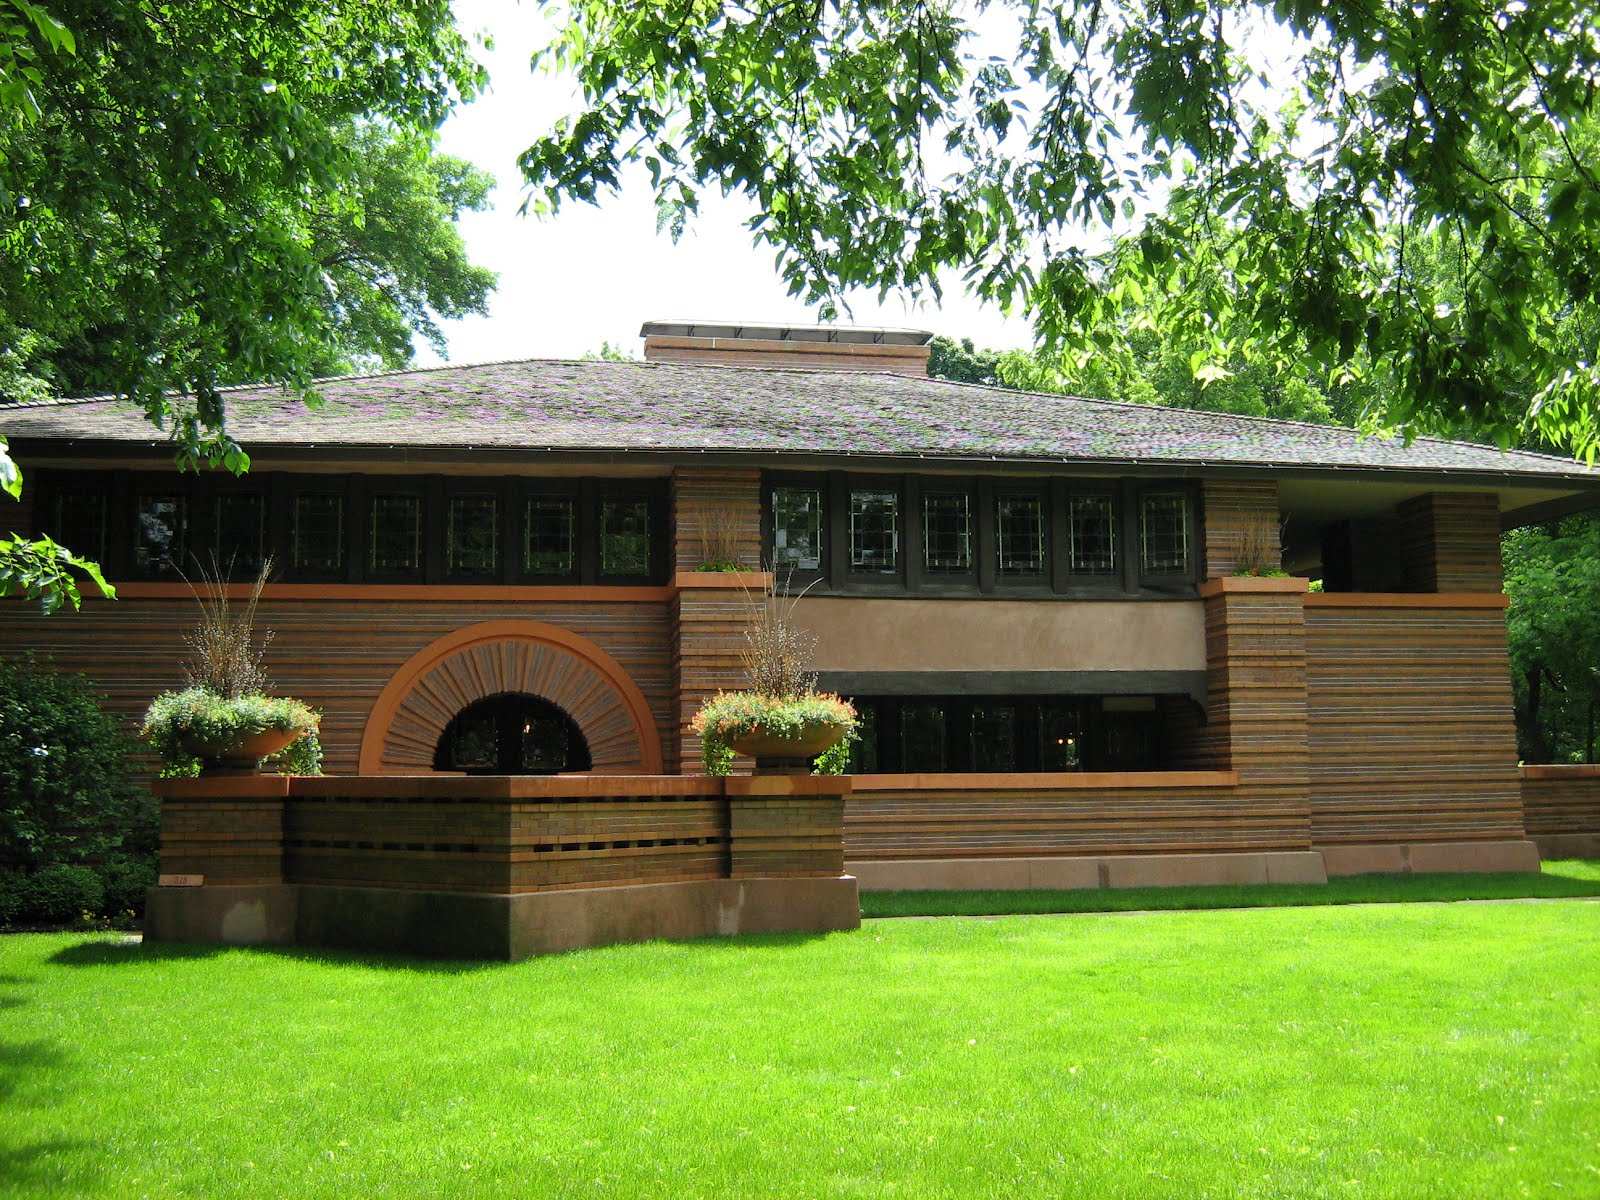 D 39 arsie arquitetura frank lloyd wright for Frank lloyd wright list of houses